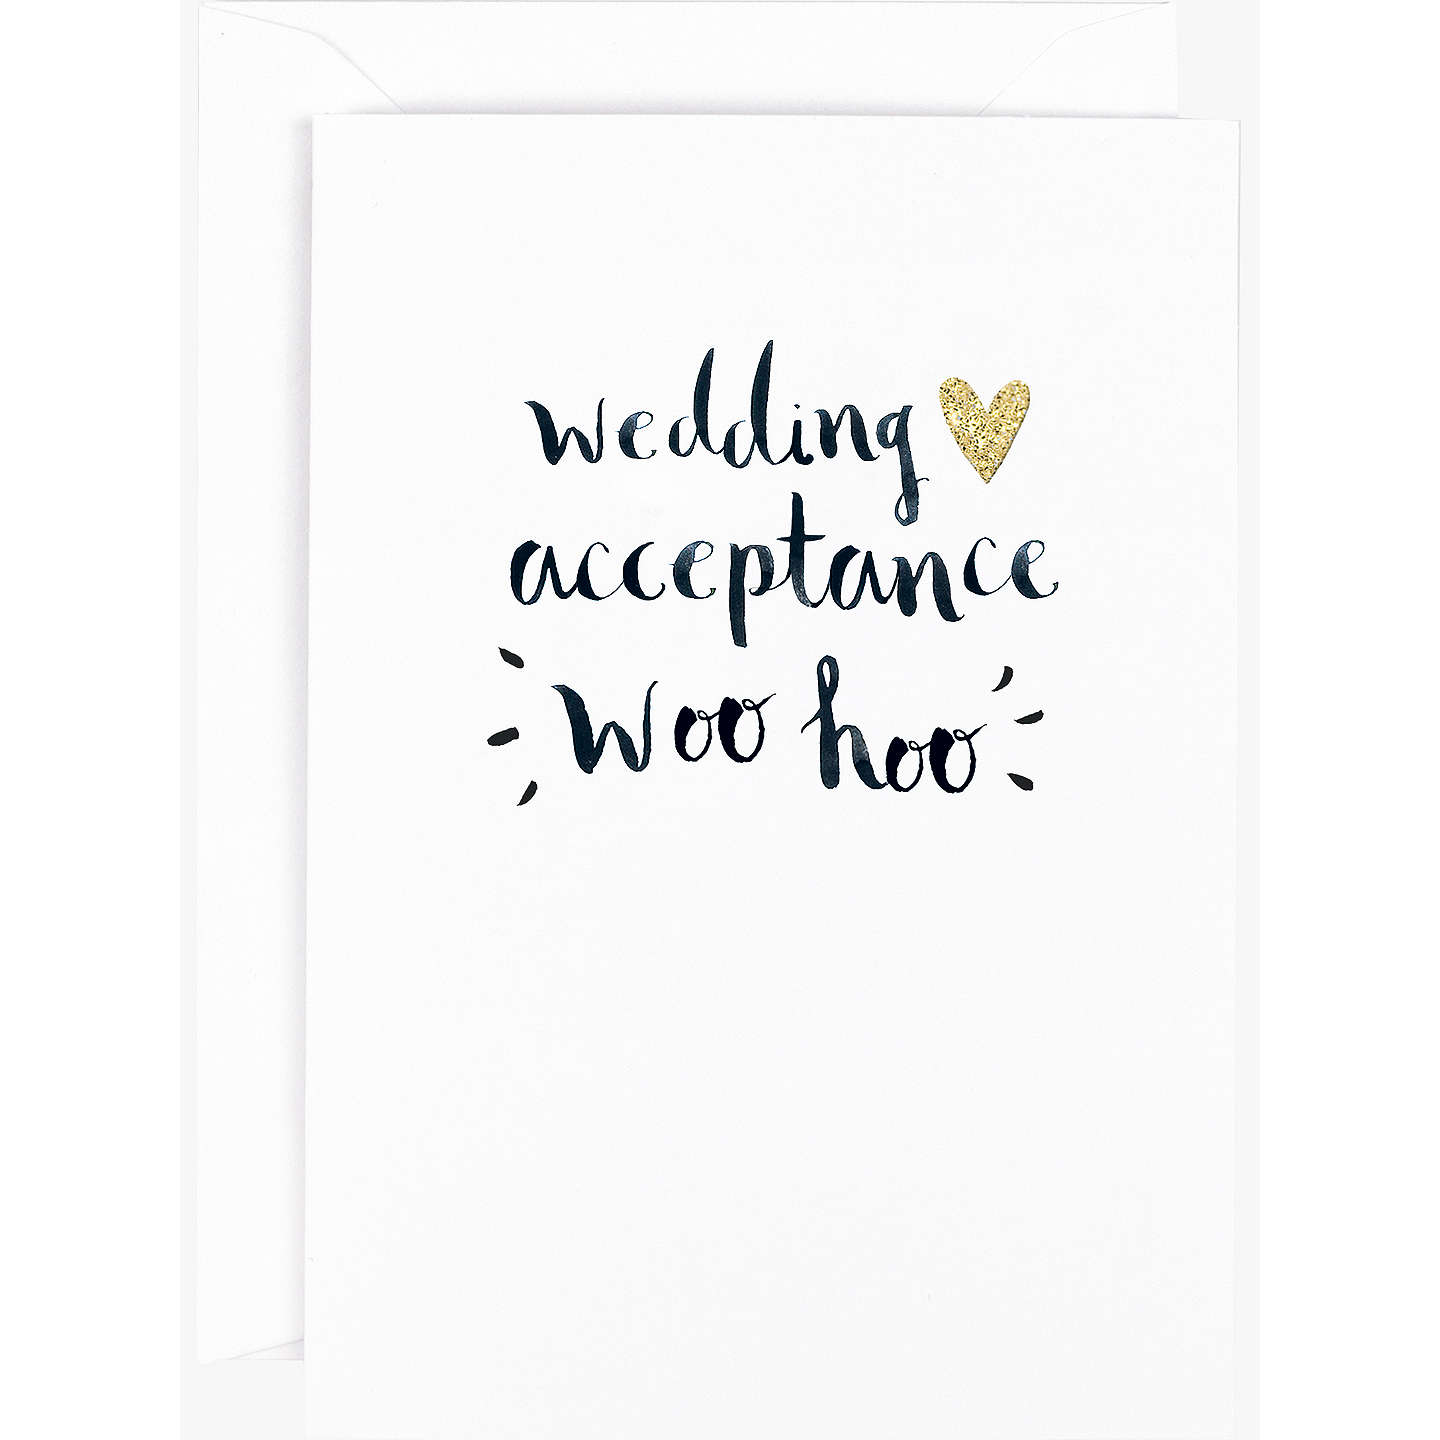 Hotchpotch Wedding Acceptance Greeting Card At John Lewis